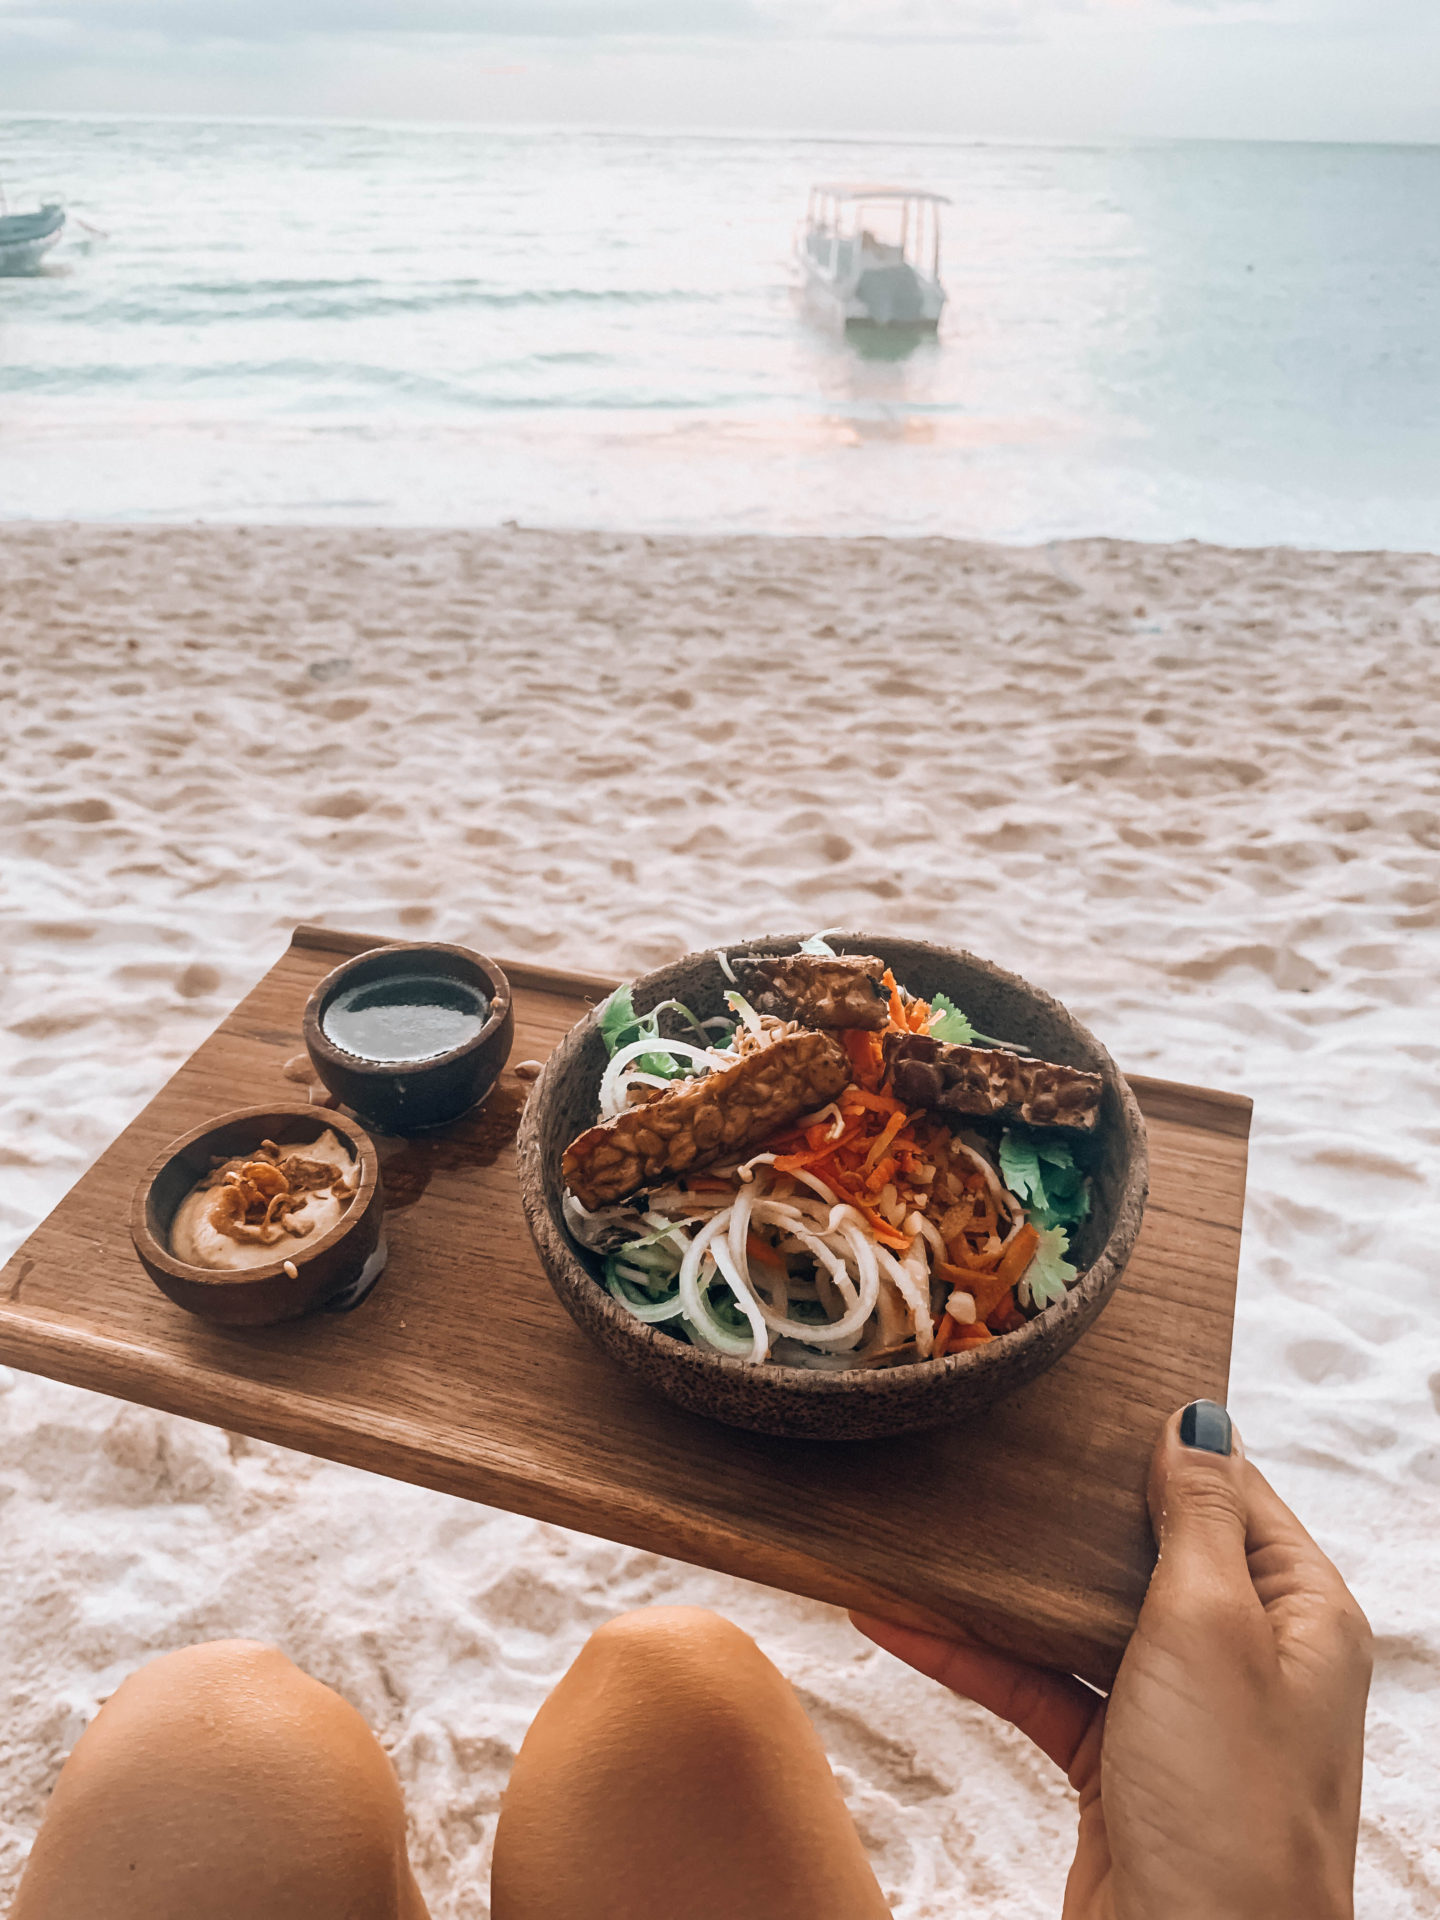 ginger and jamu food nusa penida nusa lembongan bali trip balifood tempeh bowl brunettie